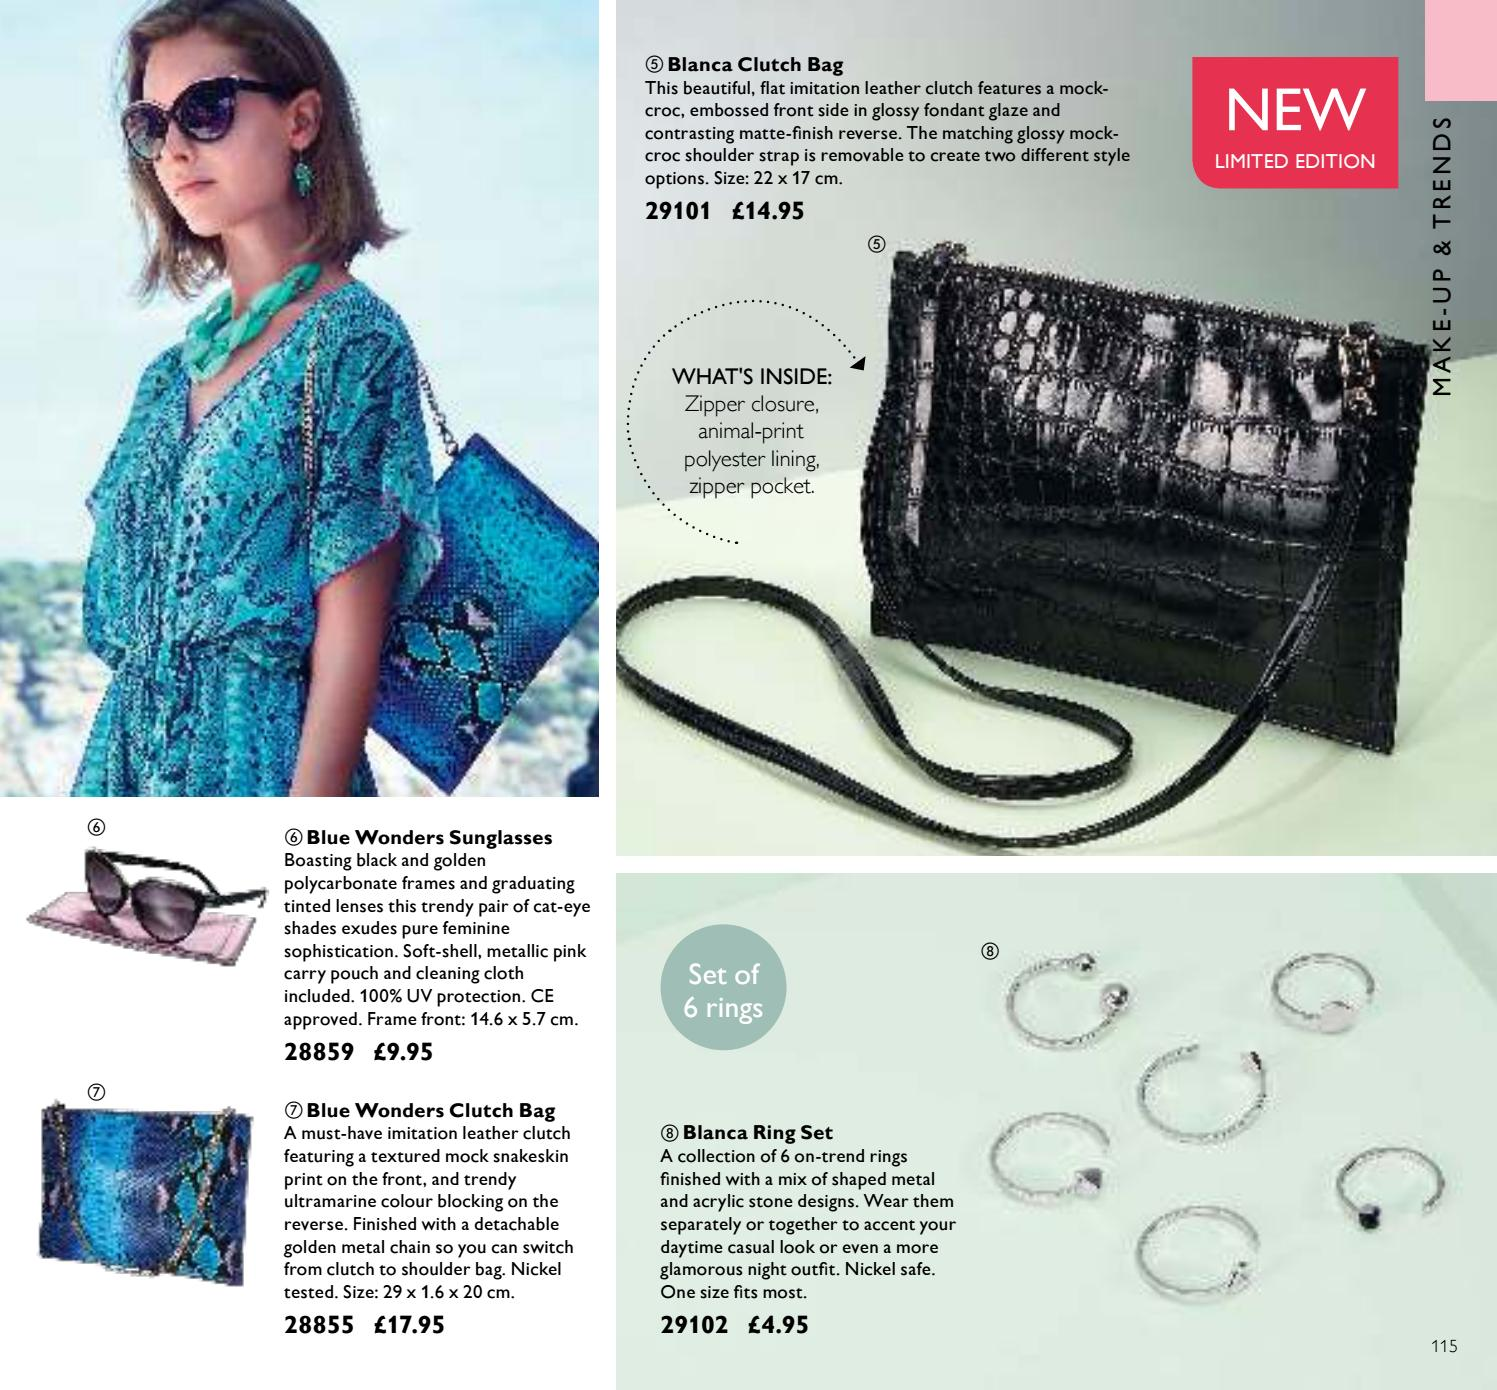 ... Pouch Source · Catalog oriflame c10 2016 uk by f b issuu 7d47b23af6367